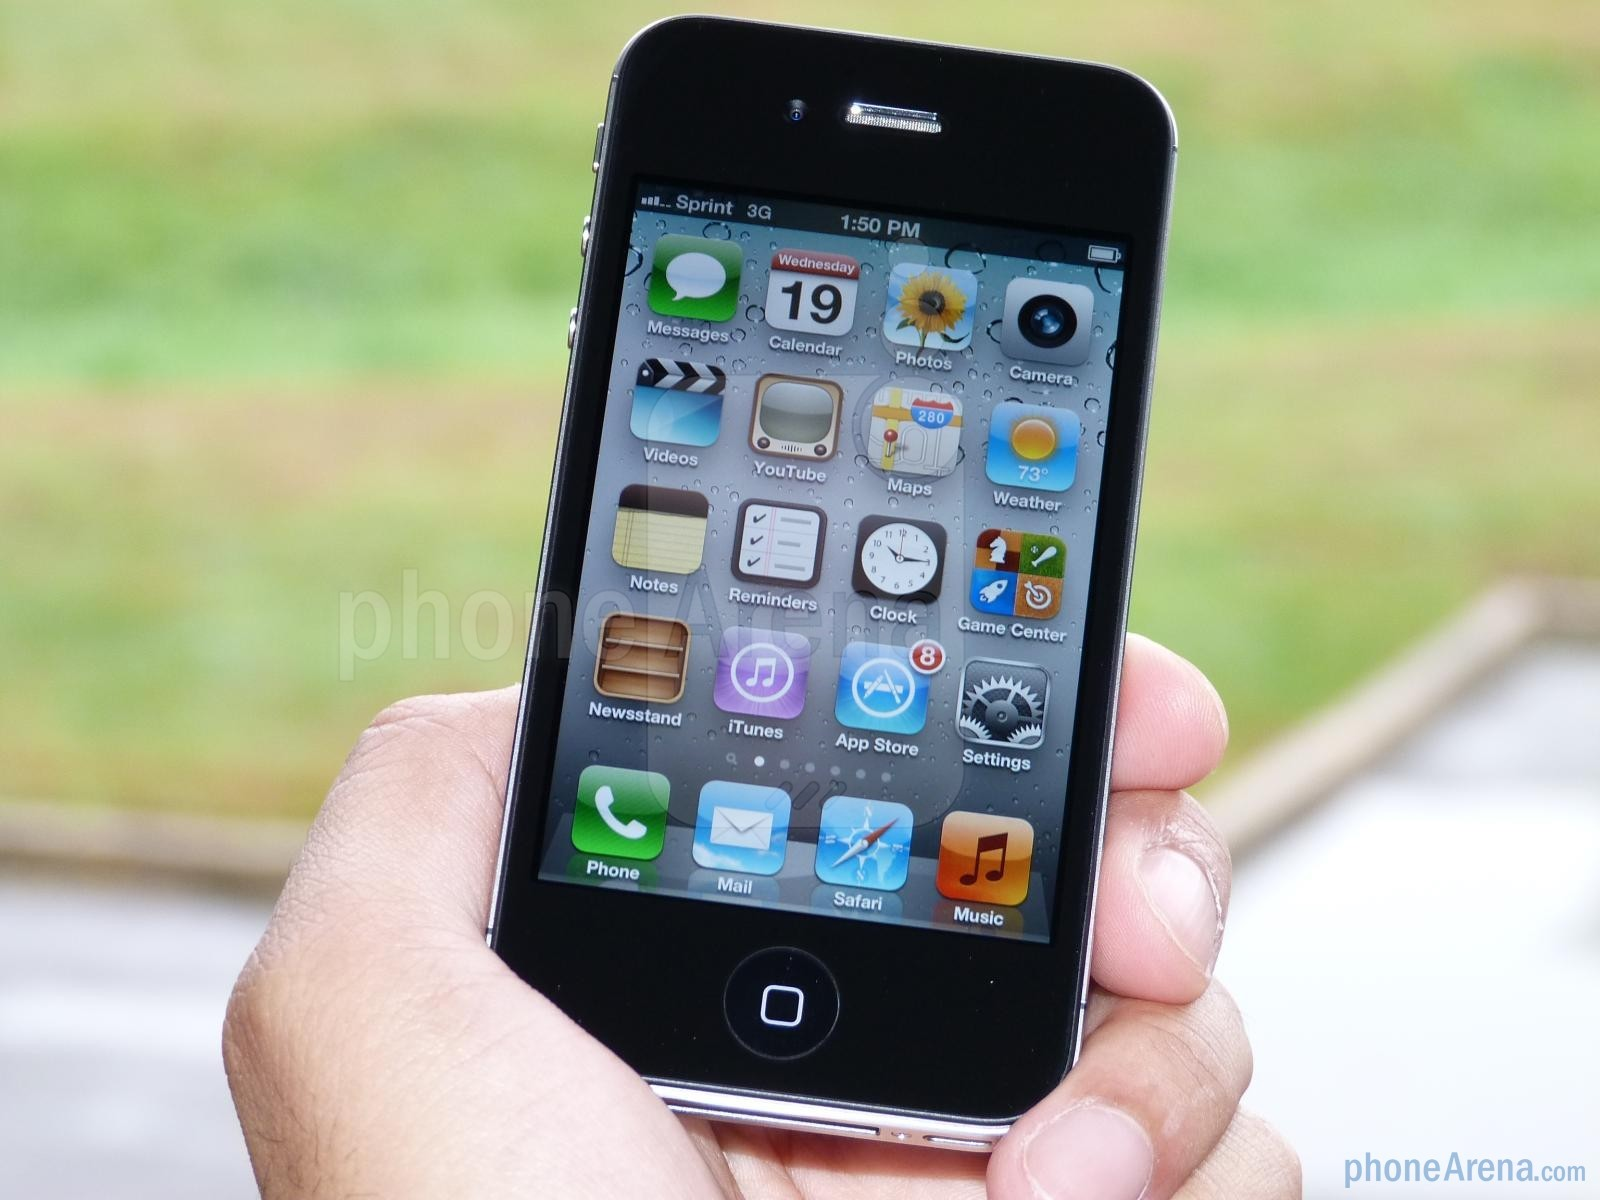 iPhone 4s 16GB 04